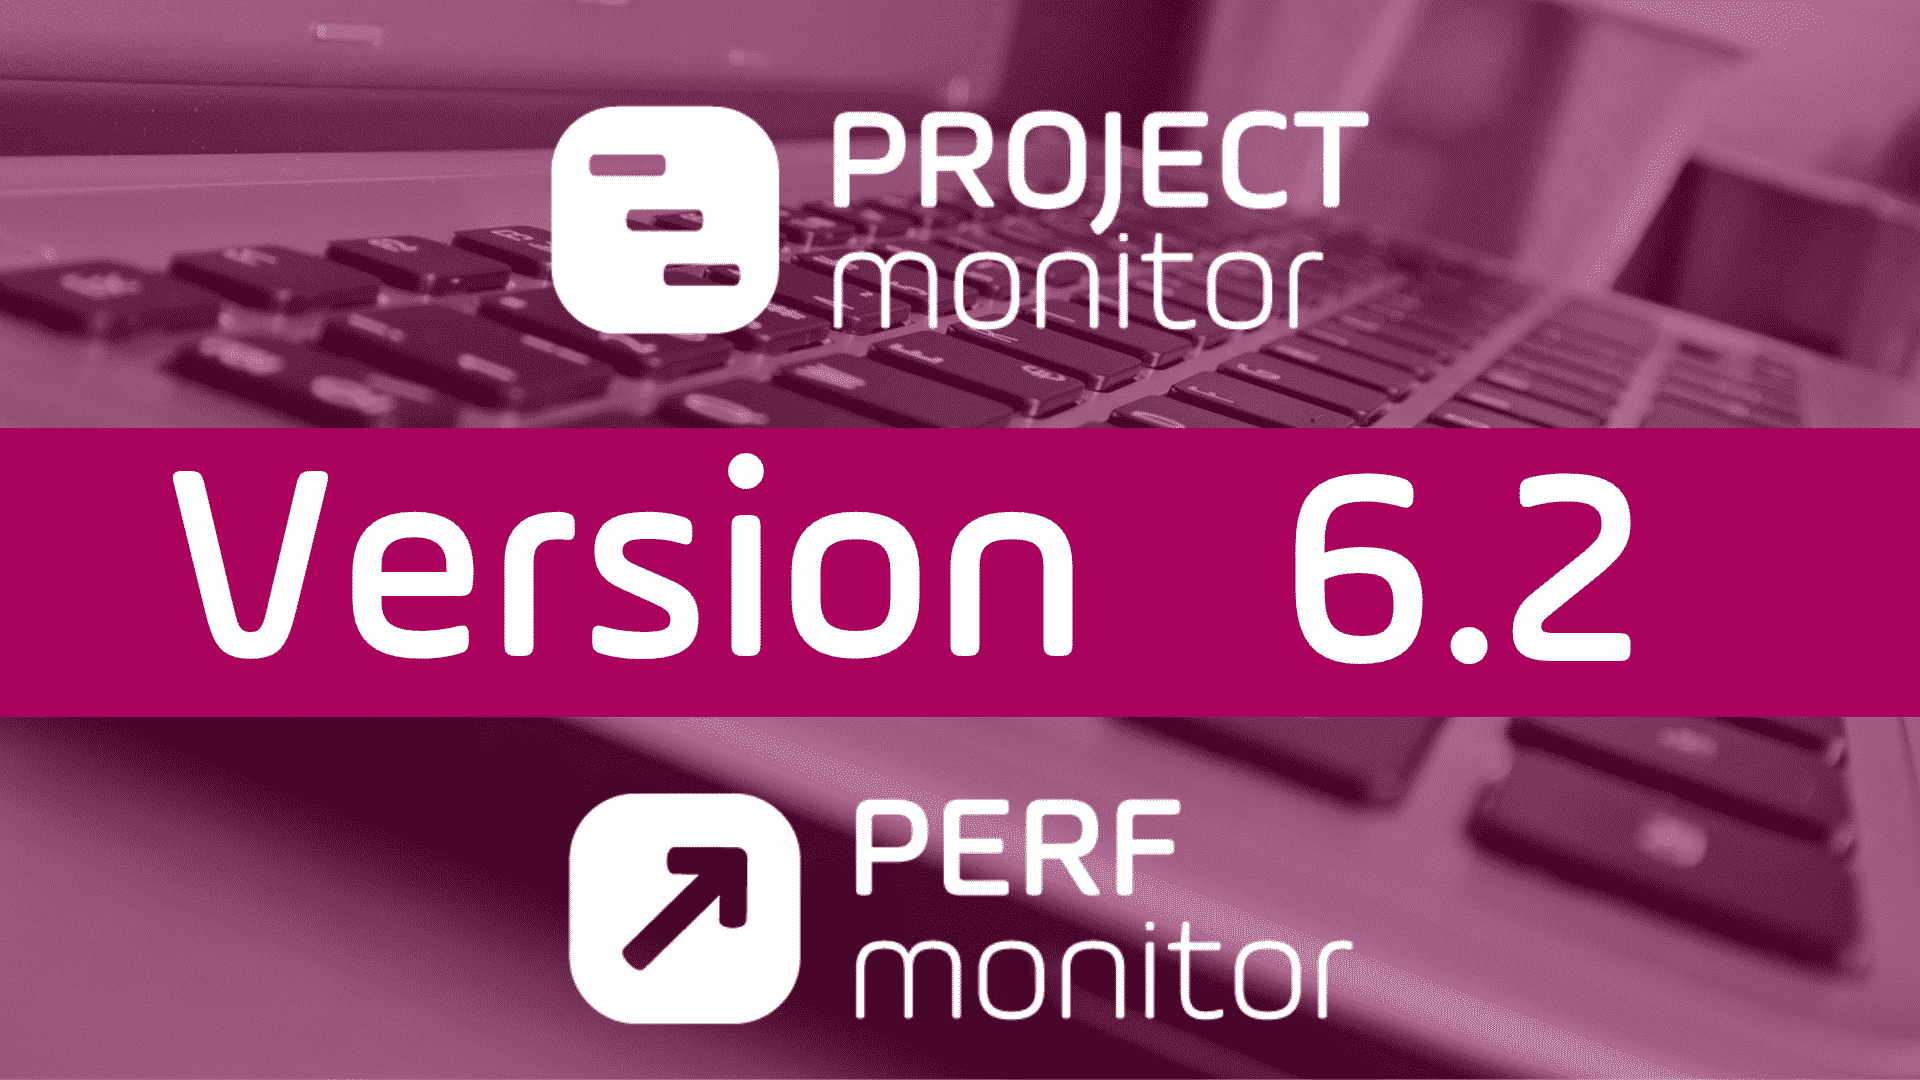 project monitor version 6.2